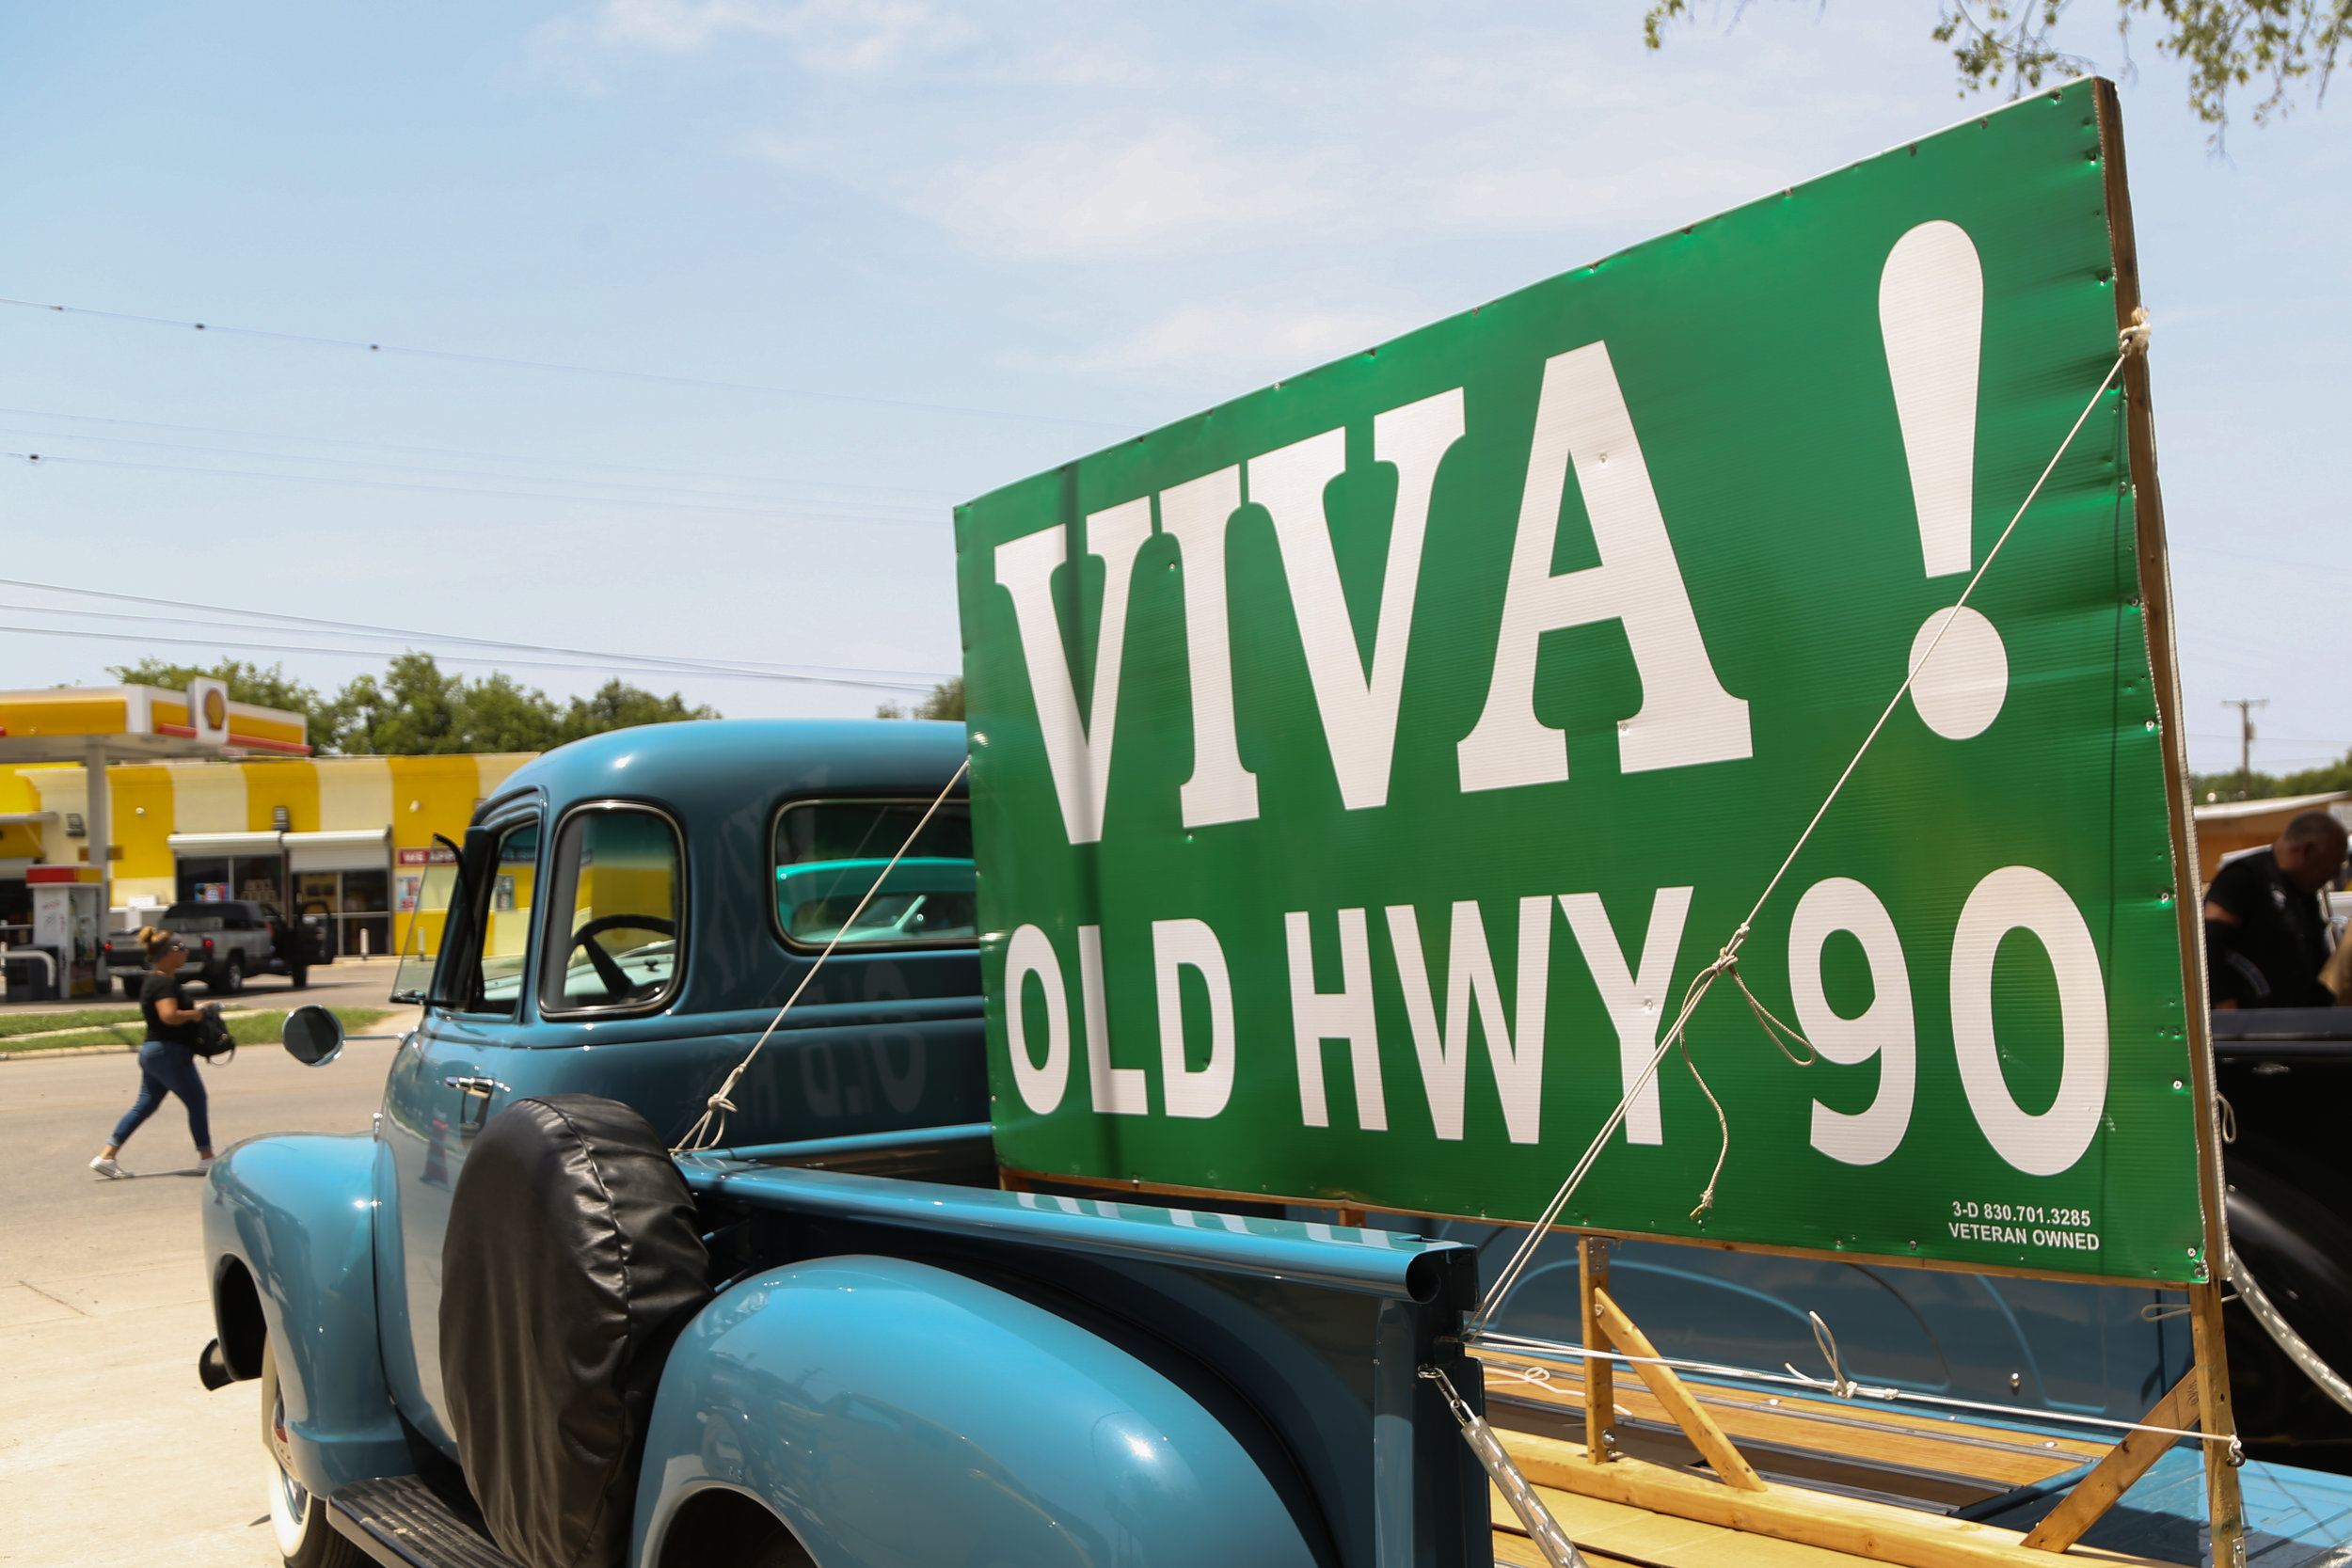 A truck carries a sign in support of Old Highway 90. (Photo by  Jonathan Guajardo .)